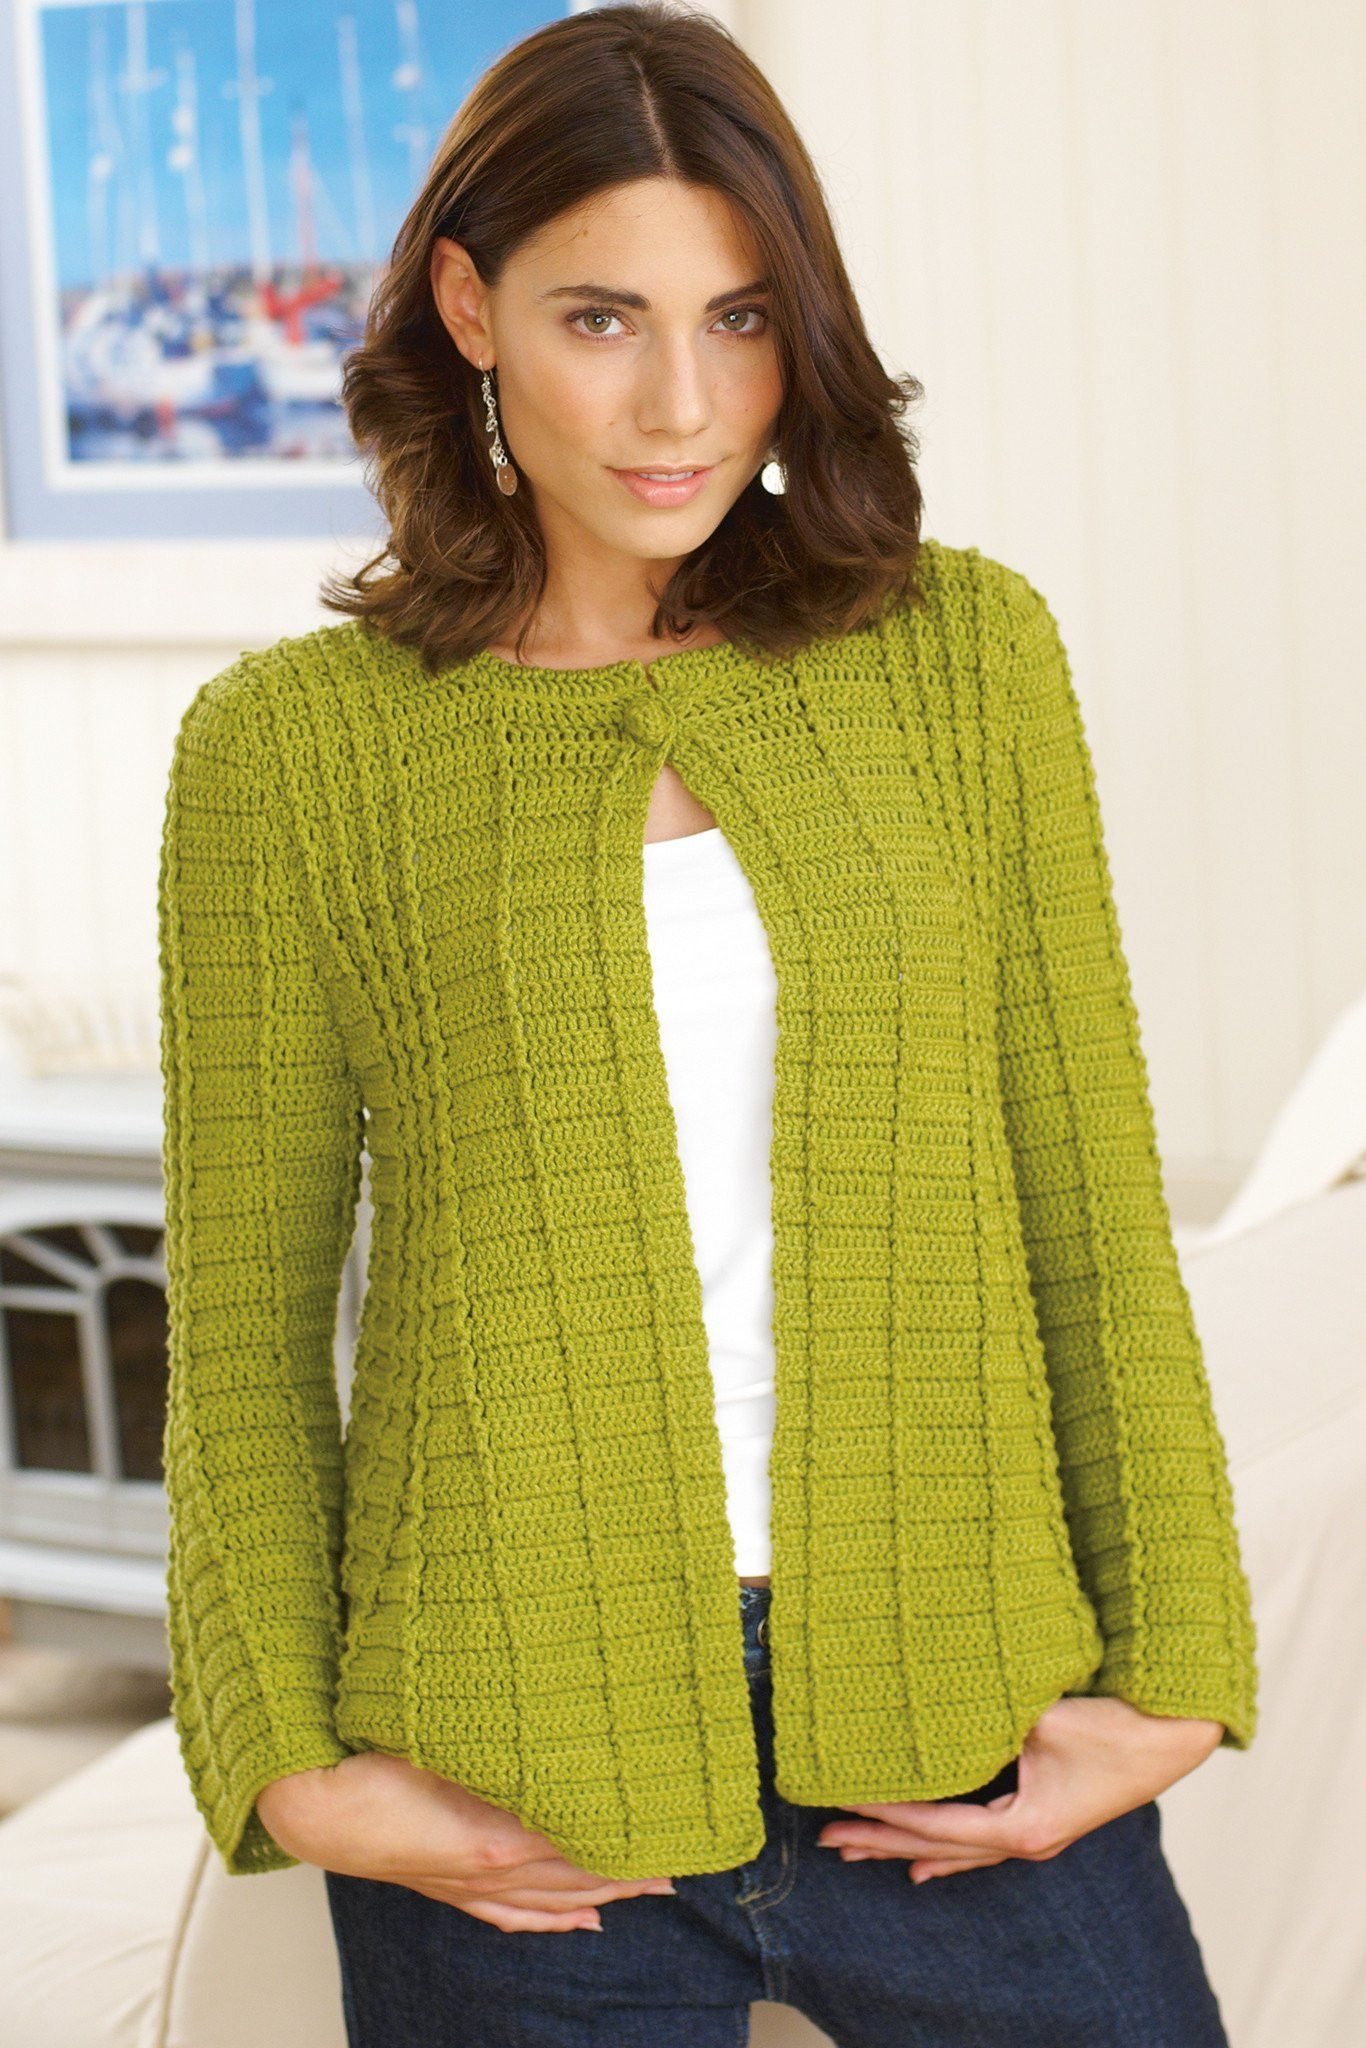 Fit And Flare Womens Jacket Crochet Pattern | The Knitting ...